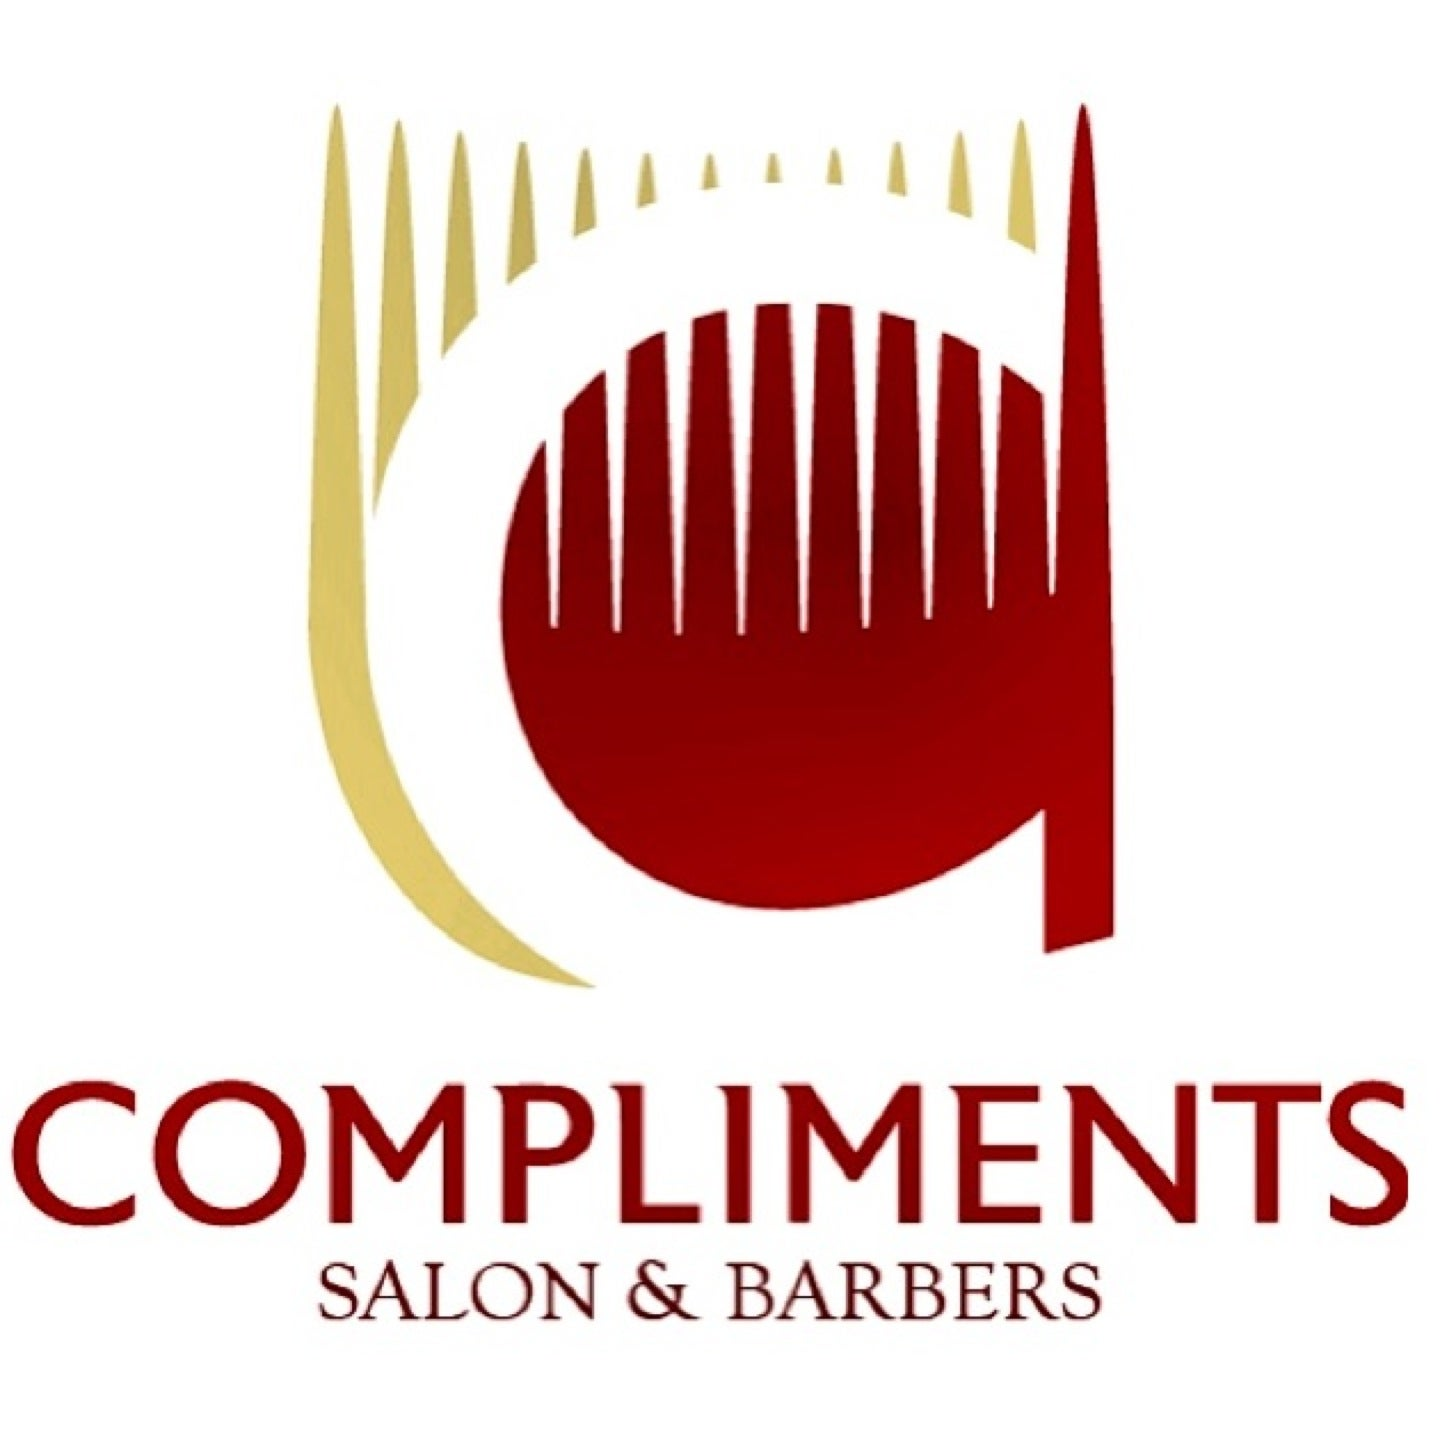 Compliments Salon and Barber Shop,